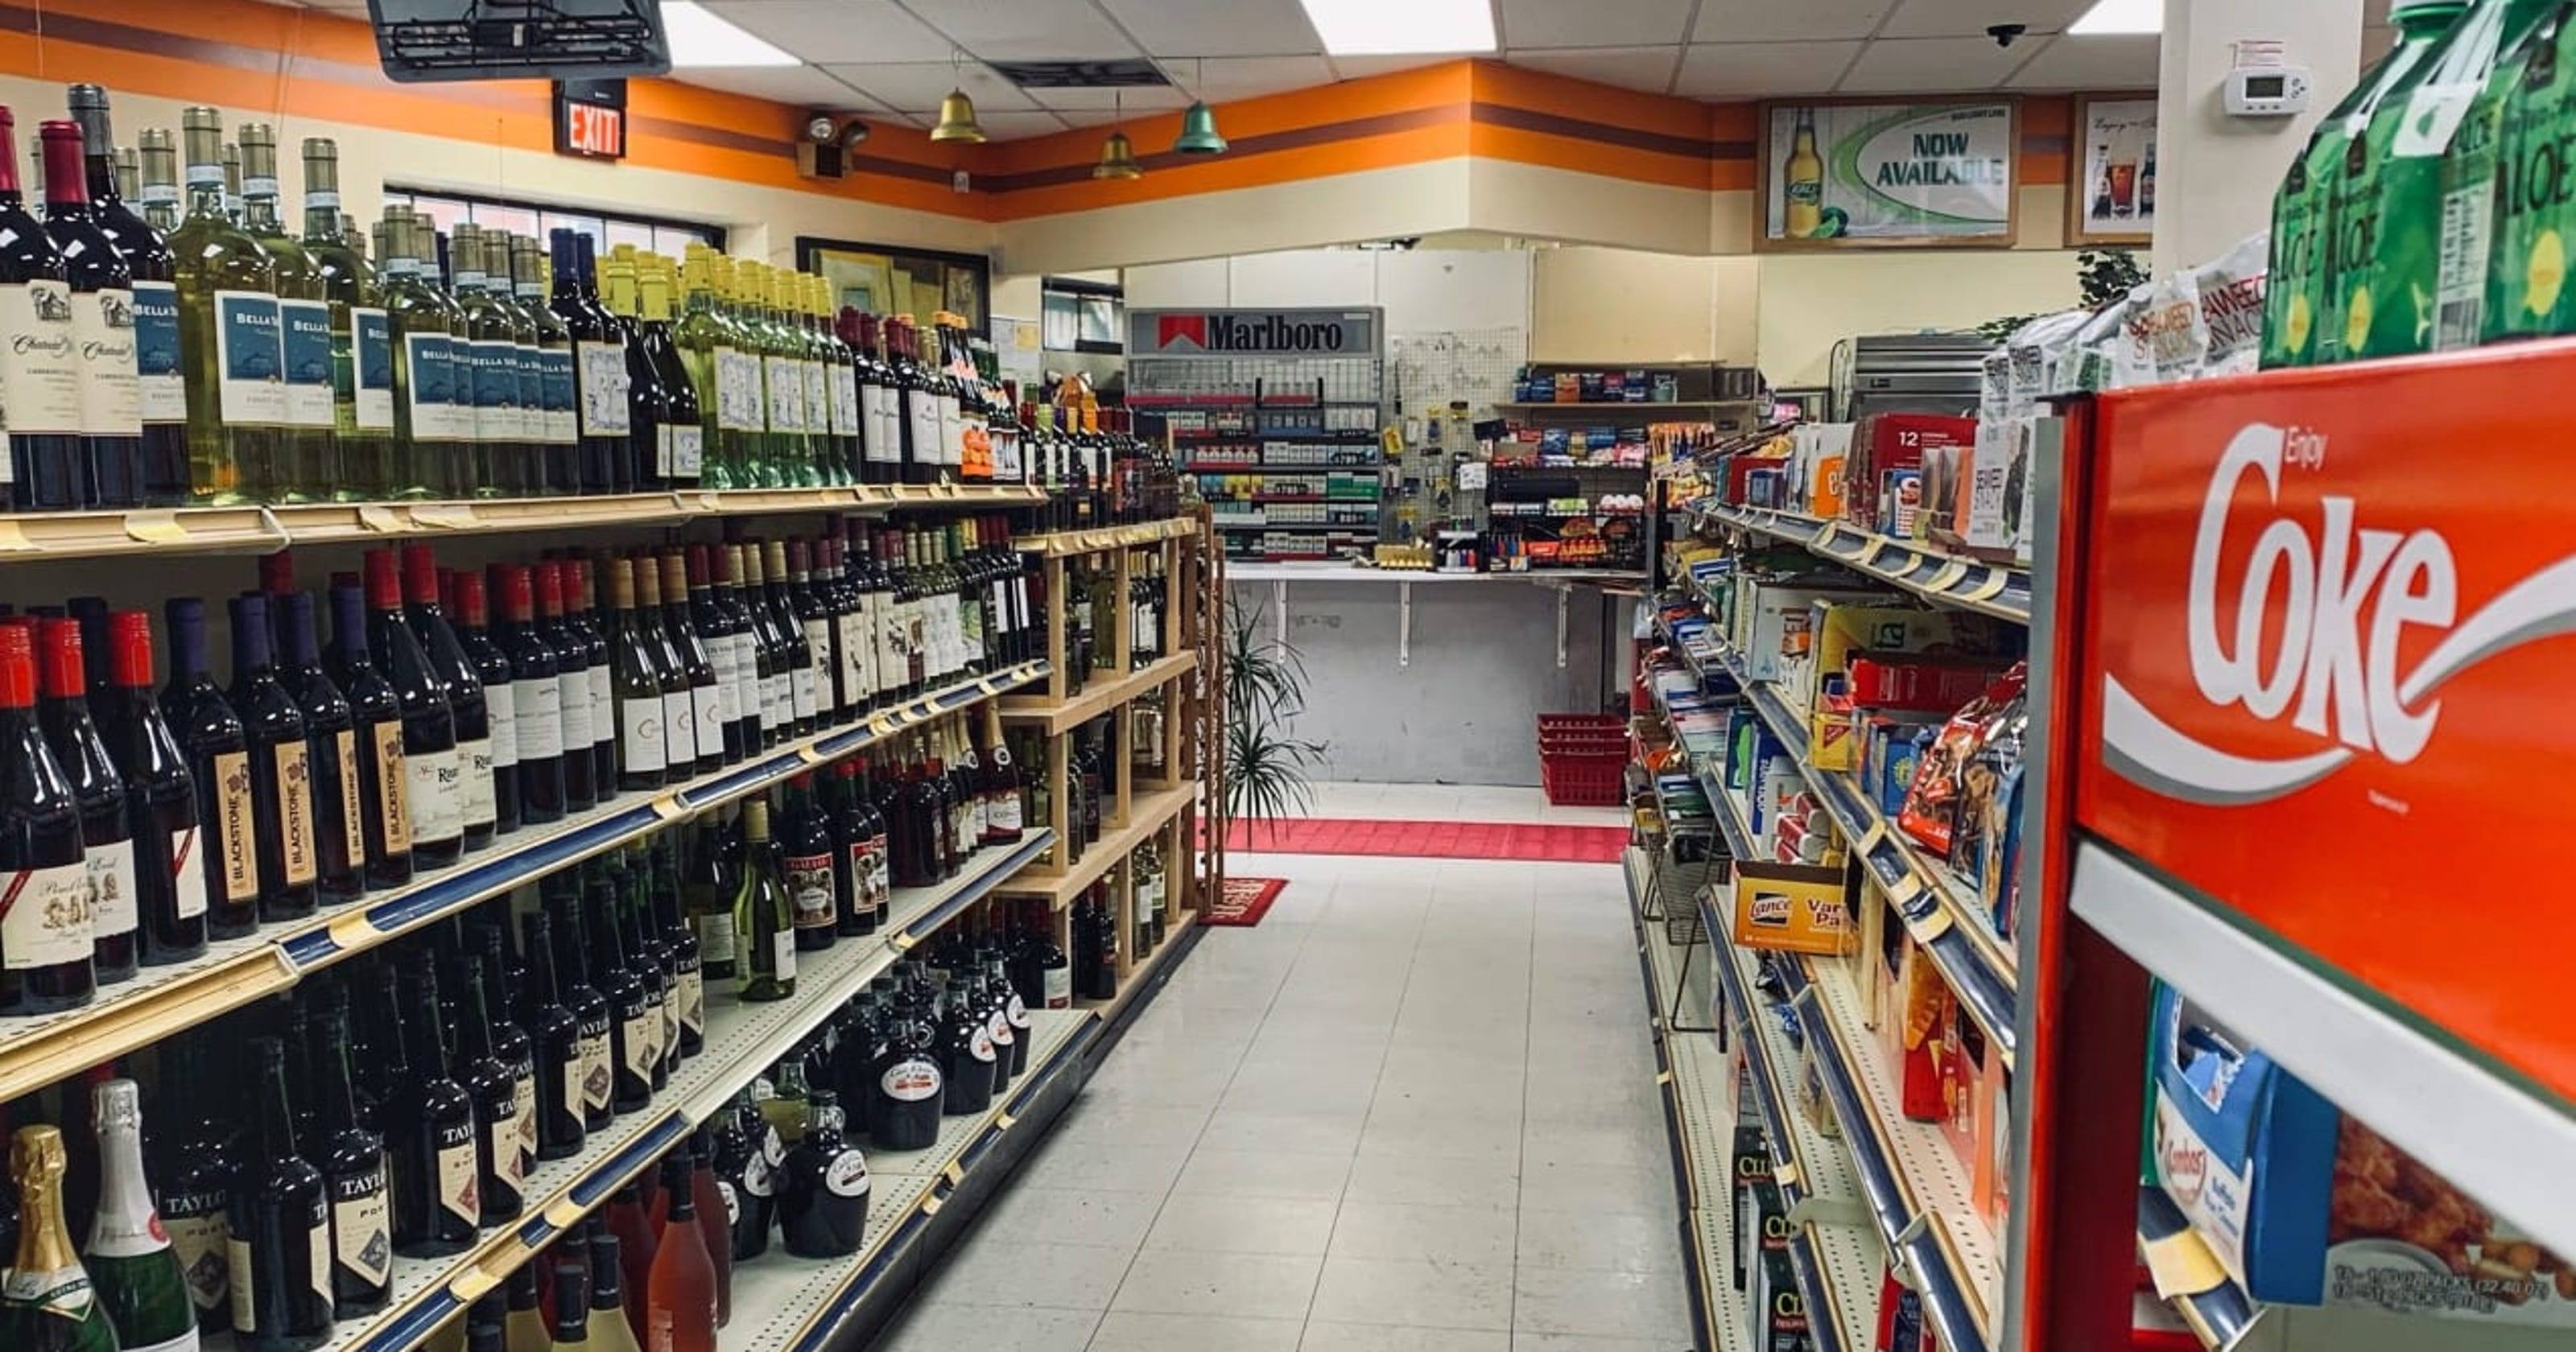 15 things you should never buy at a convenience store